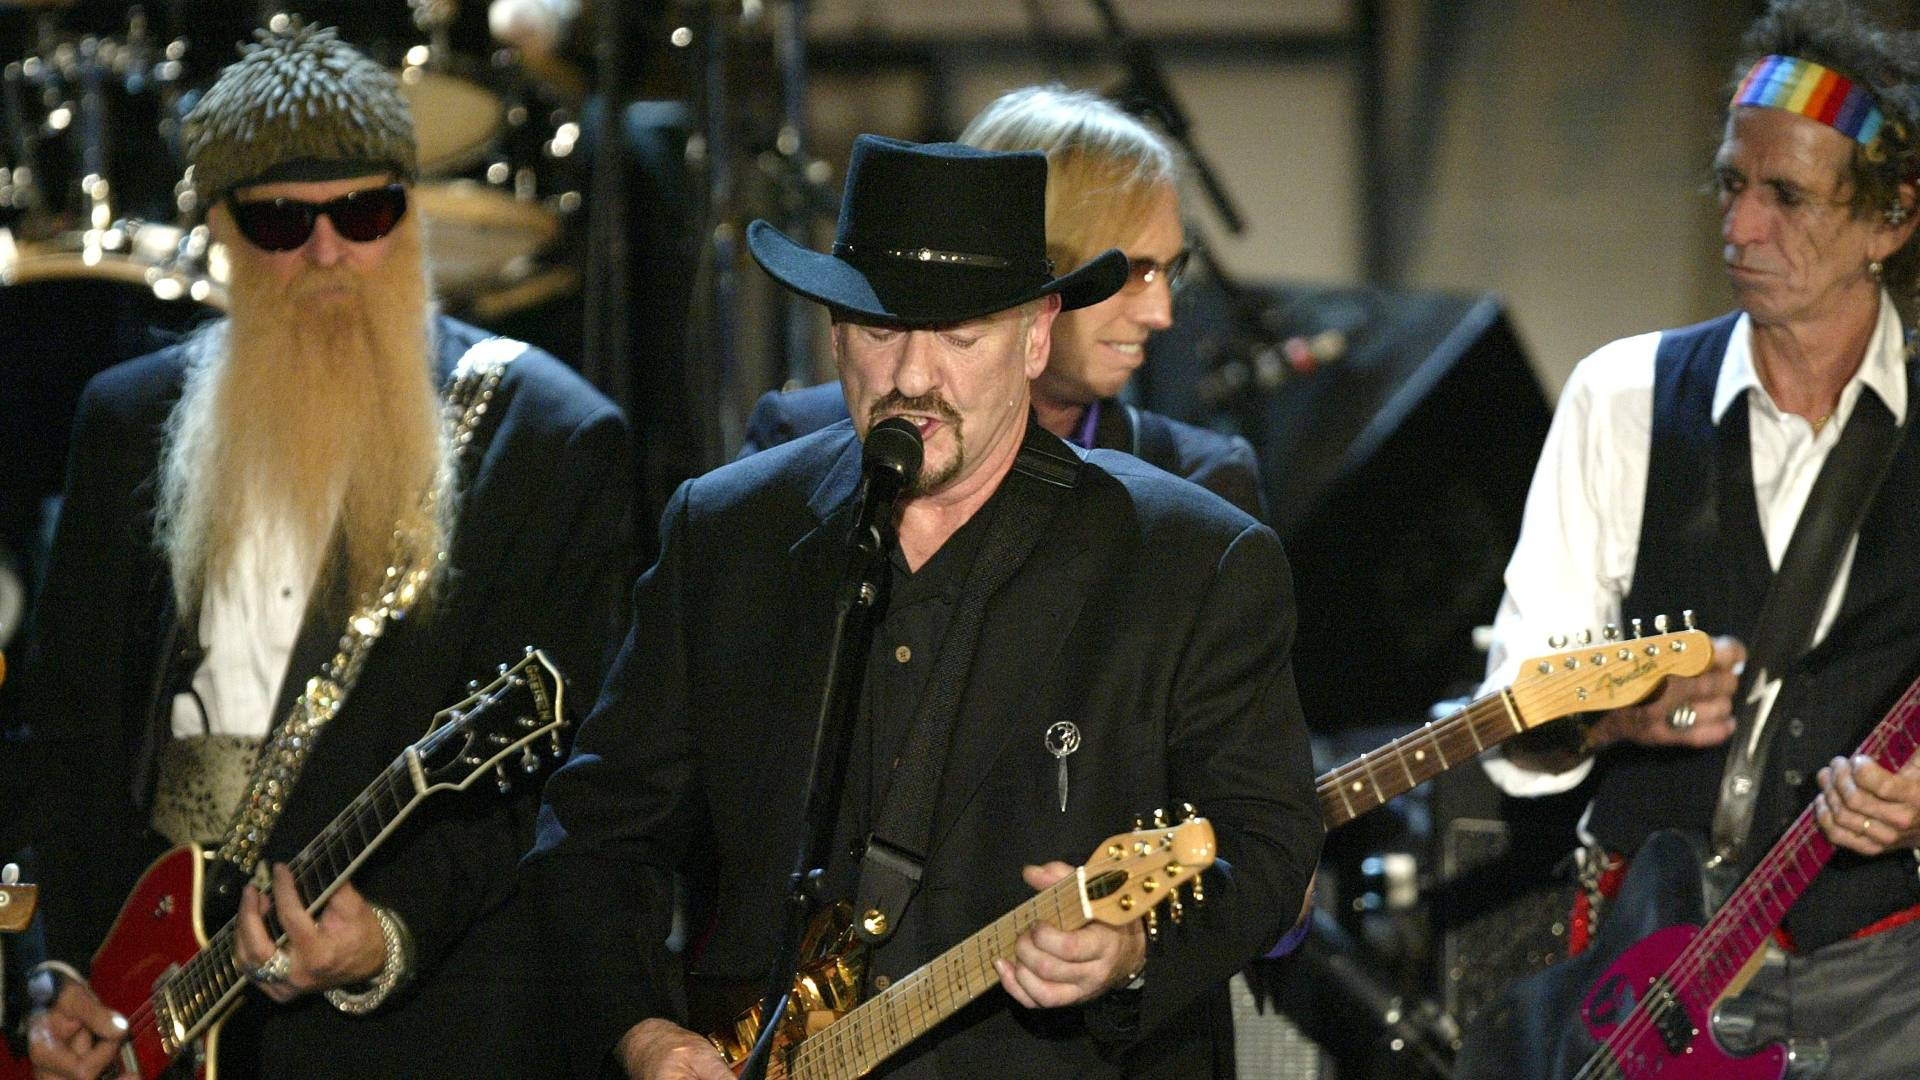 ZZ Top (esq.), Traffic (ao centro) e Keith Richards (dir.) se apresentam no jantar anual do Rock & Roll Hall Of Fame em hotel em Nova York (15/3/2004)